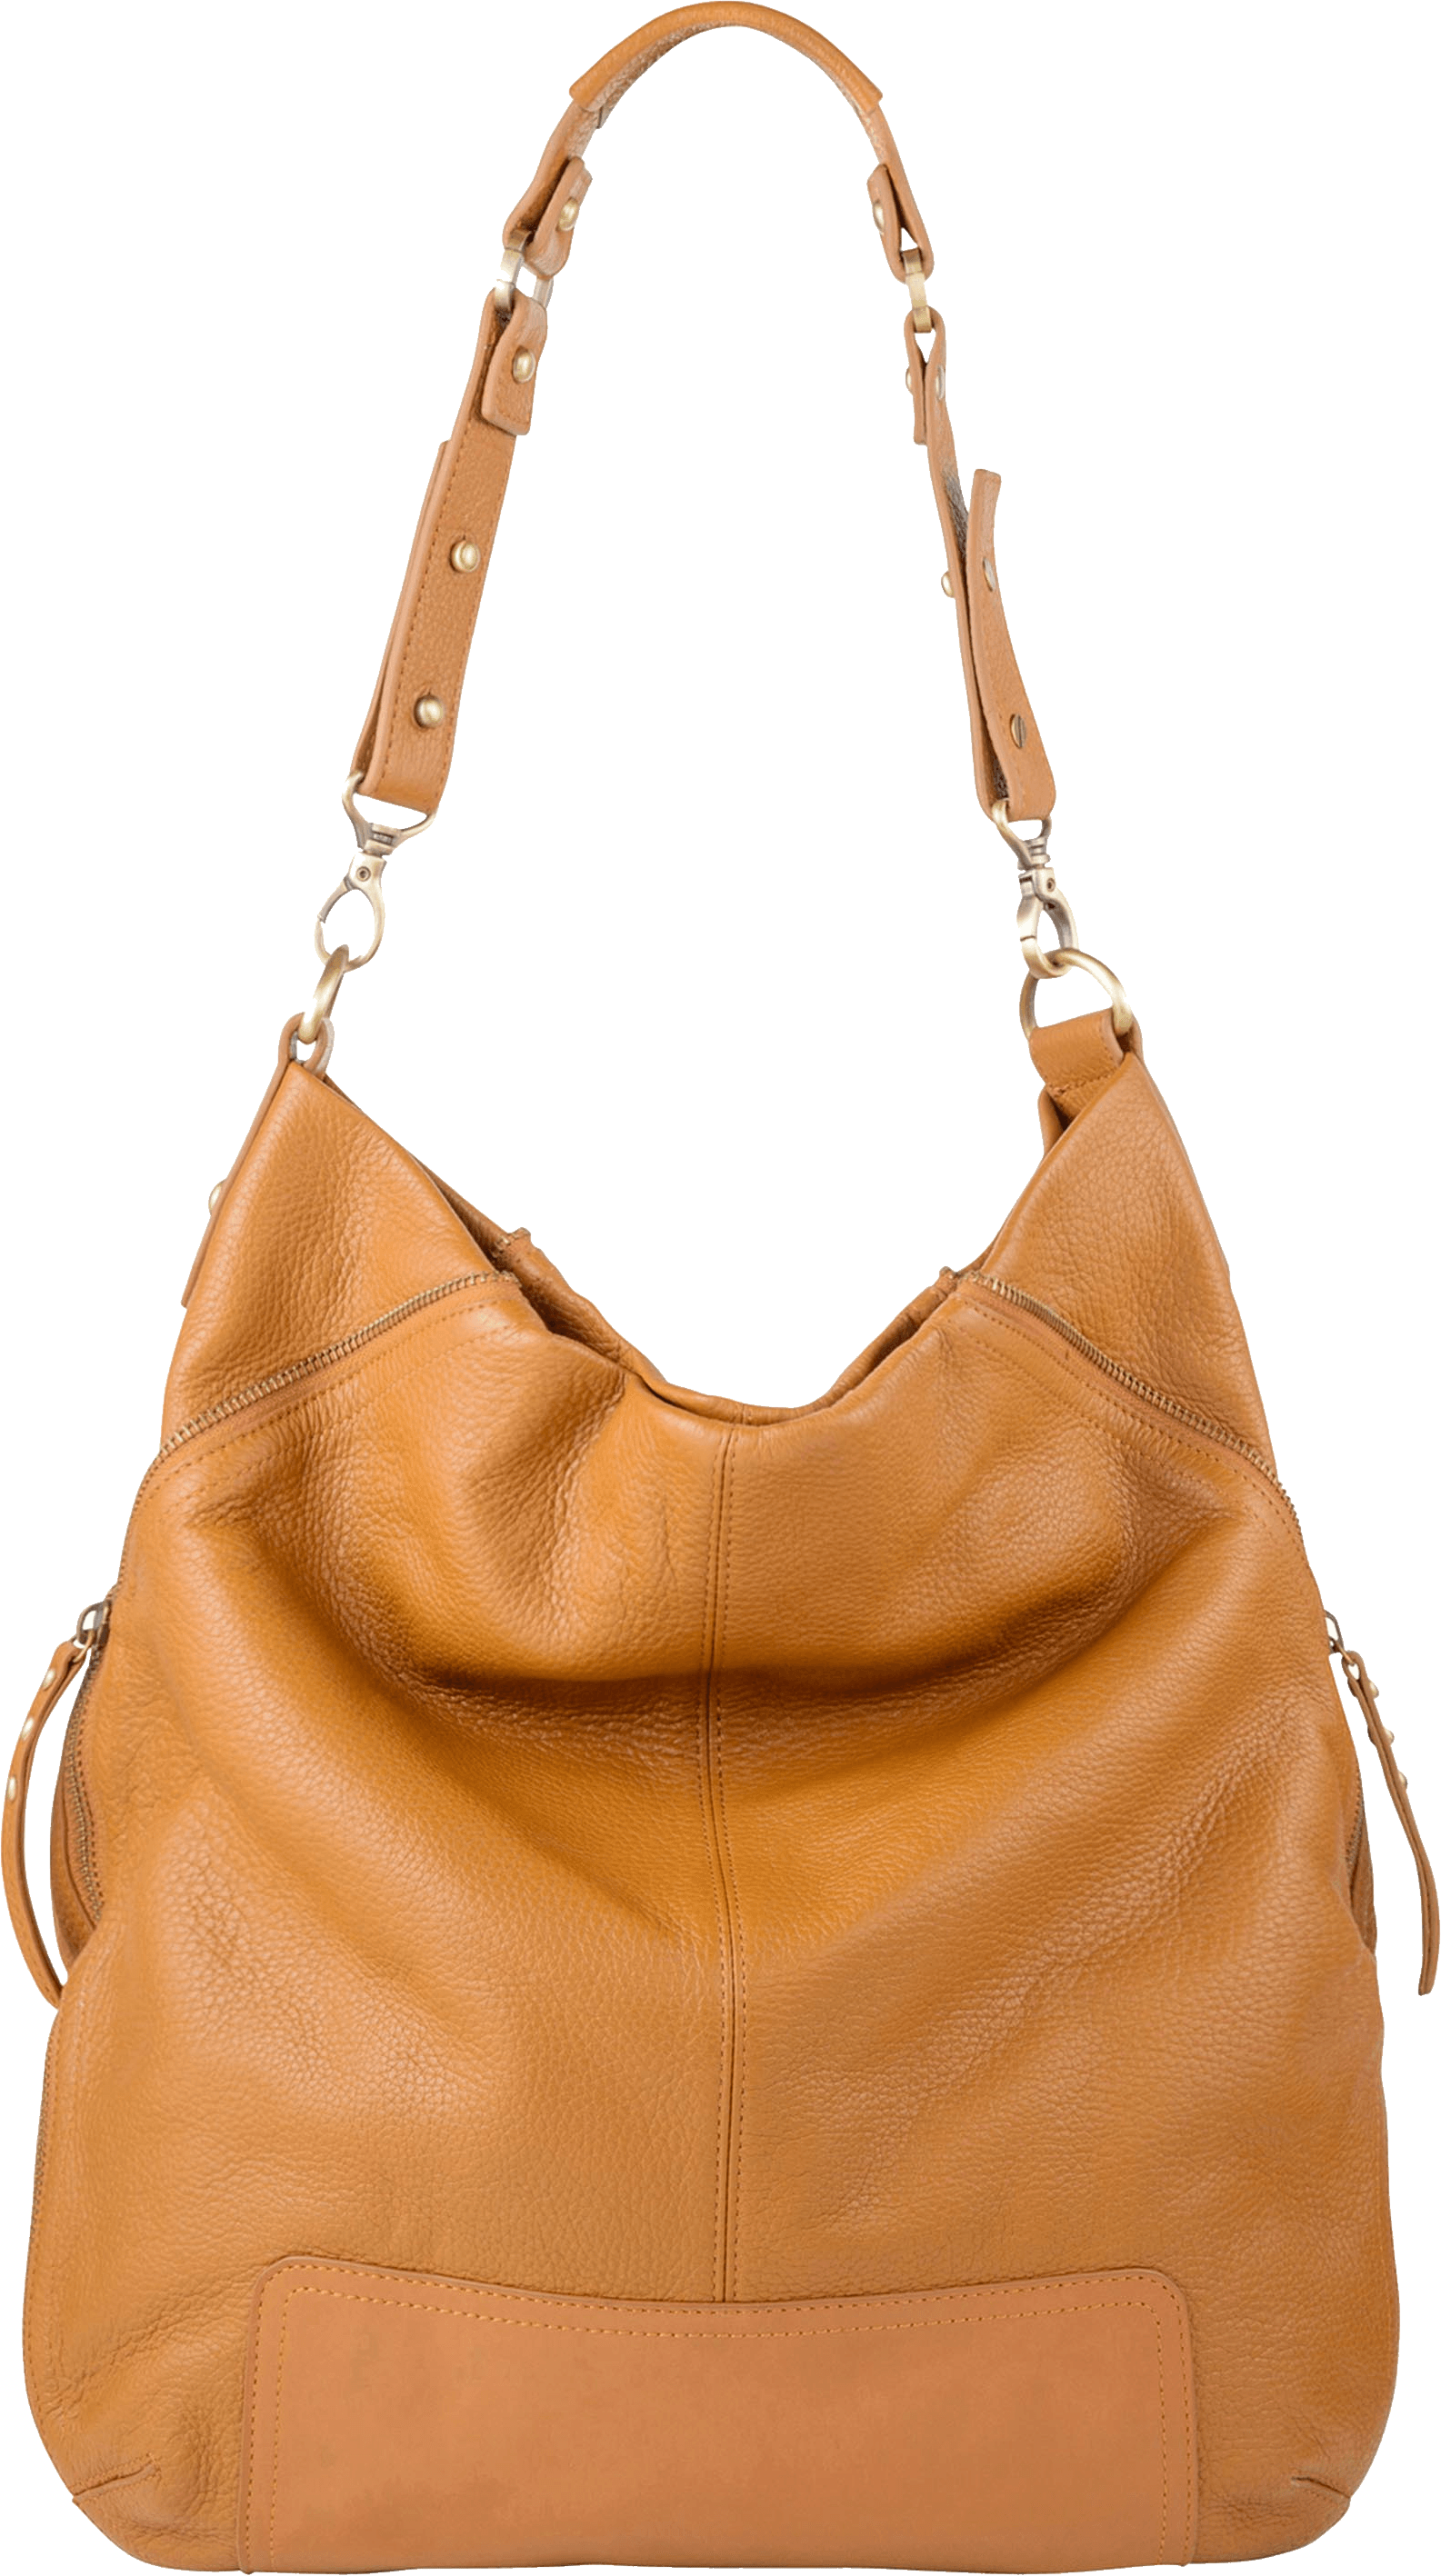 Leather Women Bag Png Image PNG Image